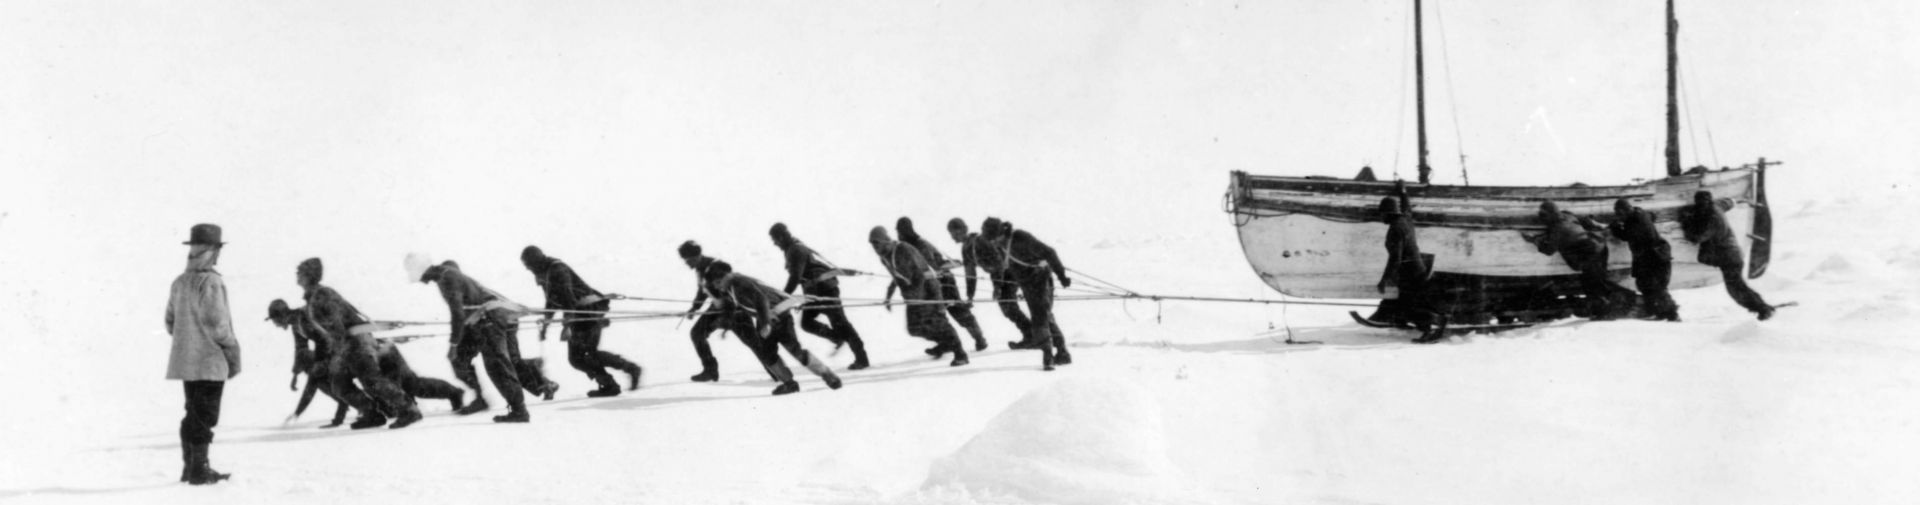 Endurance Centenaire de Shackleton, Expedition